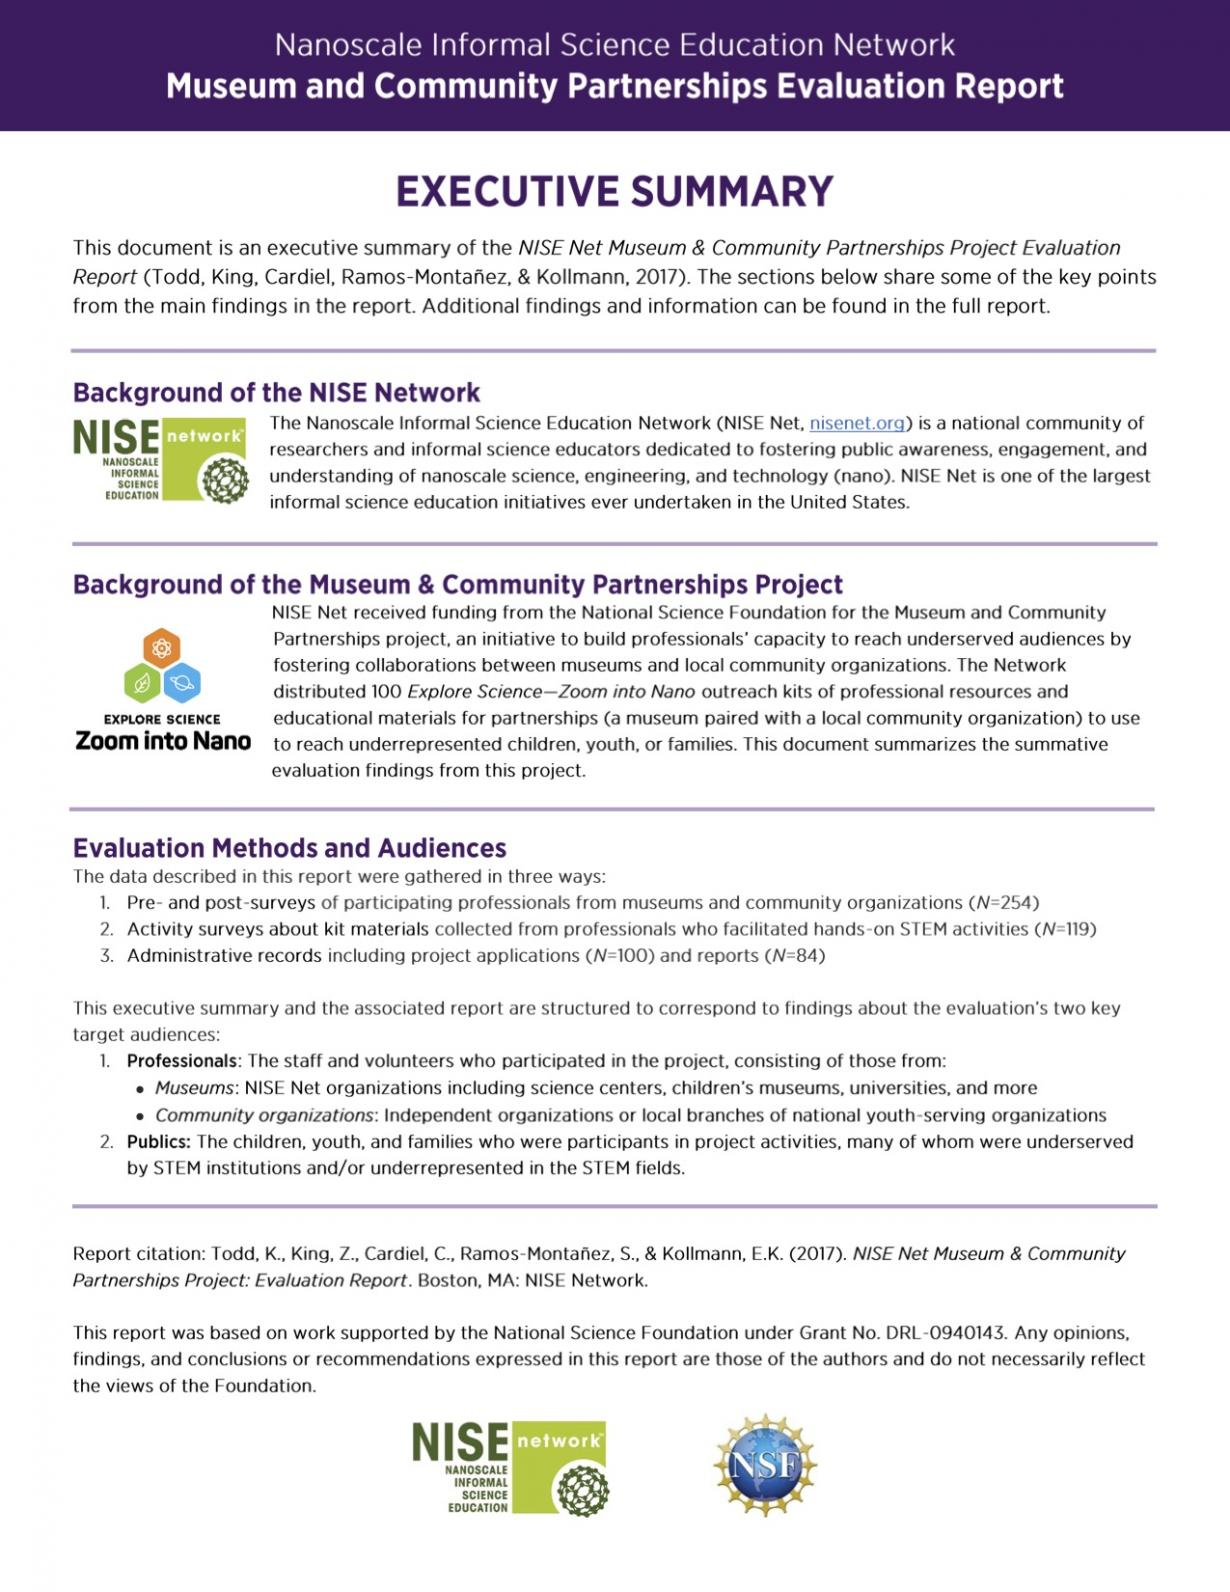 Museum & Community Partnerships Project executive summary page 1